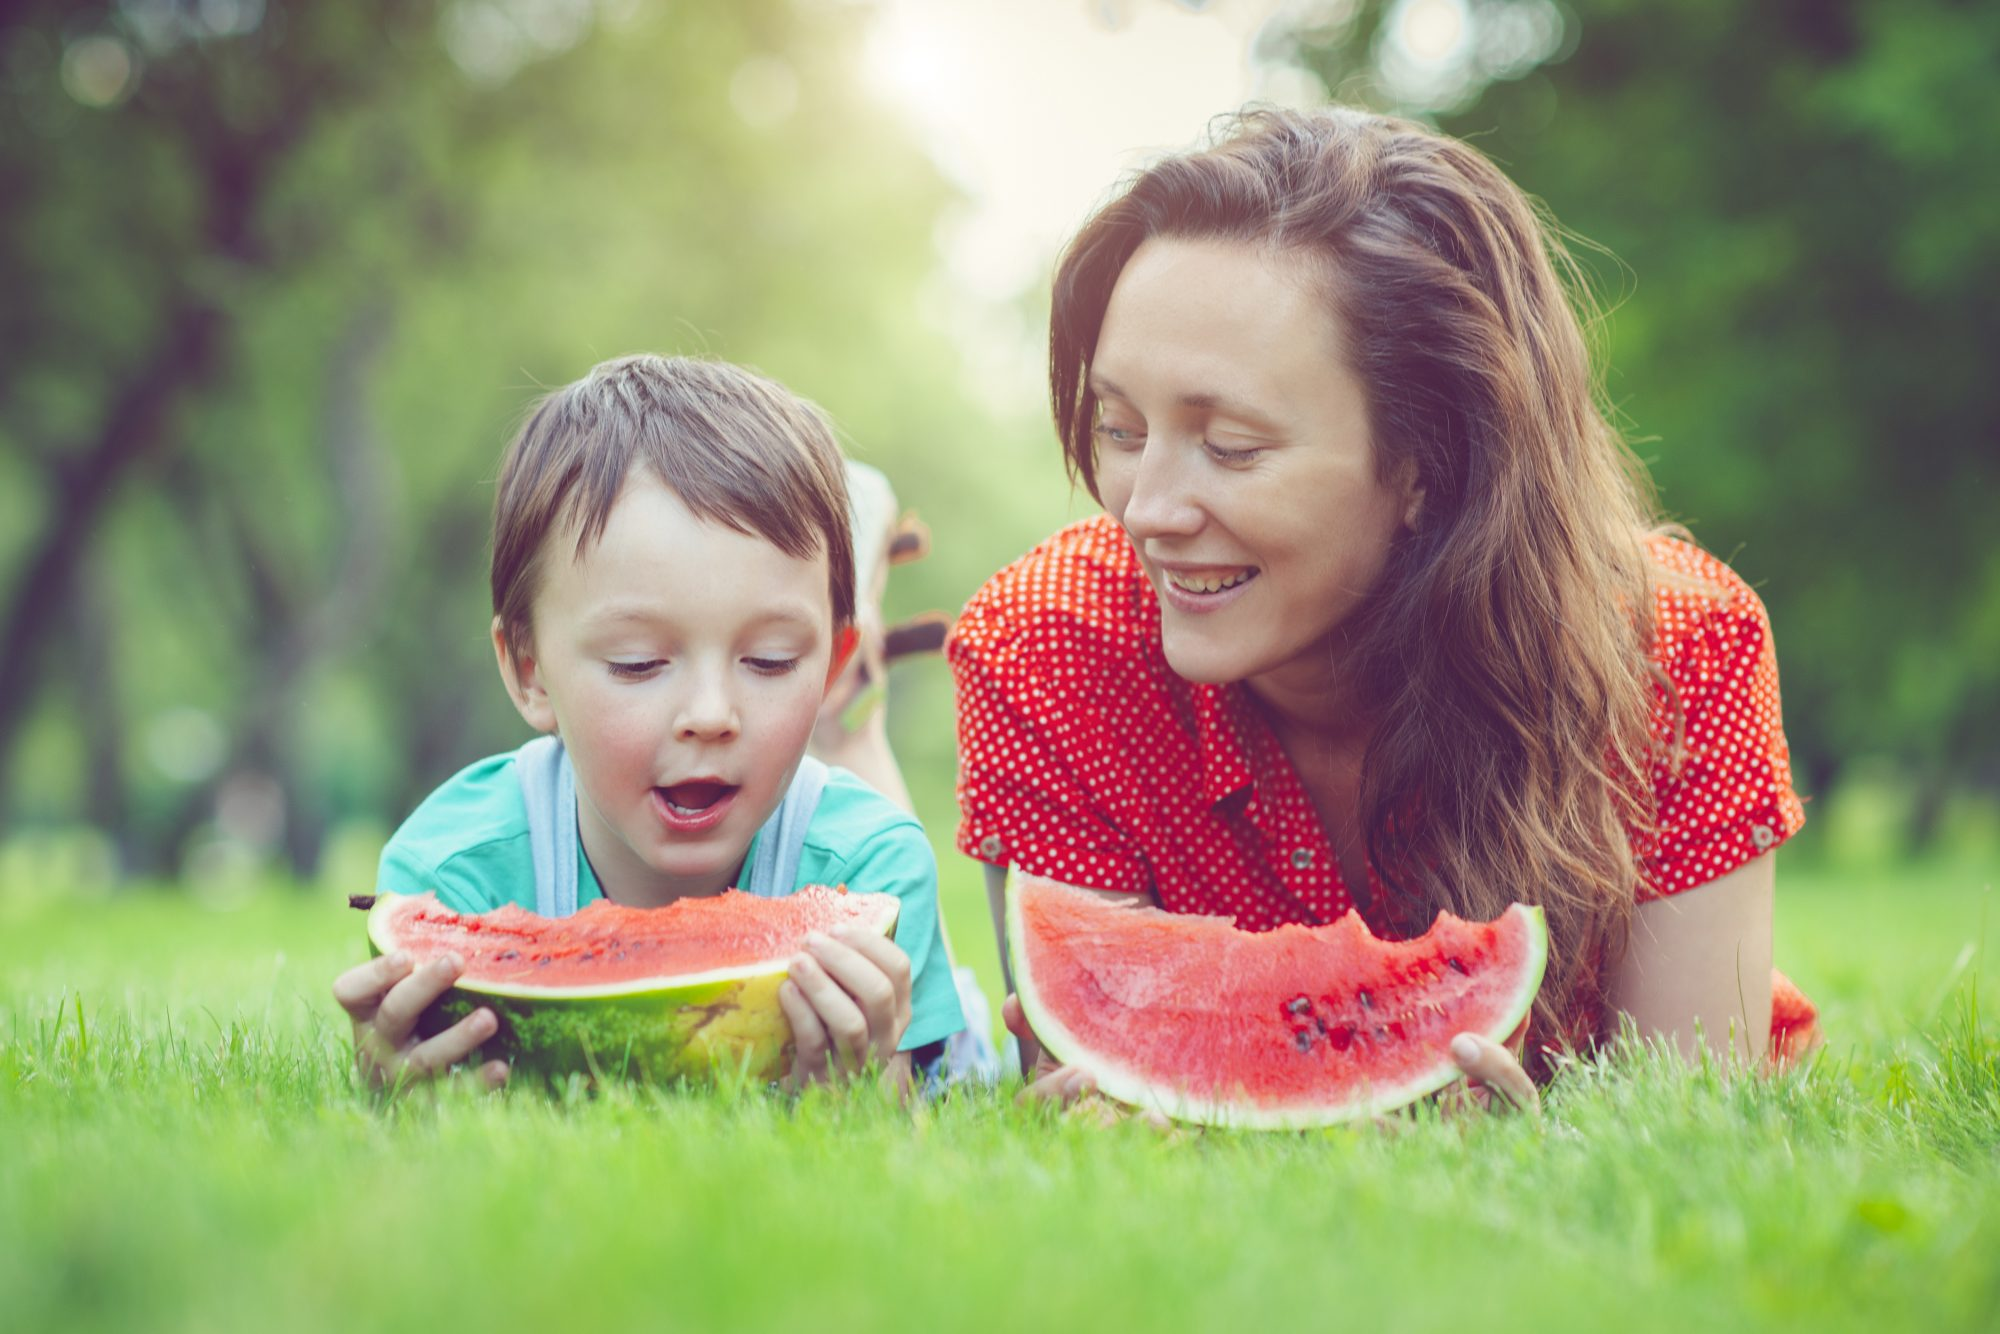 Boy and Mother Eating Watermelon